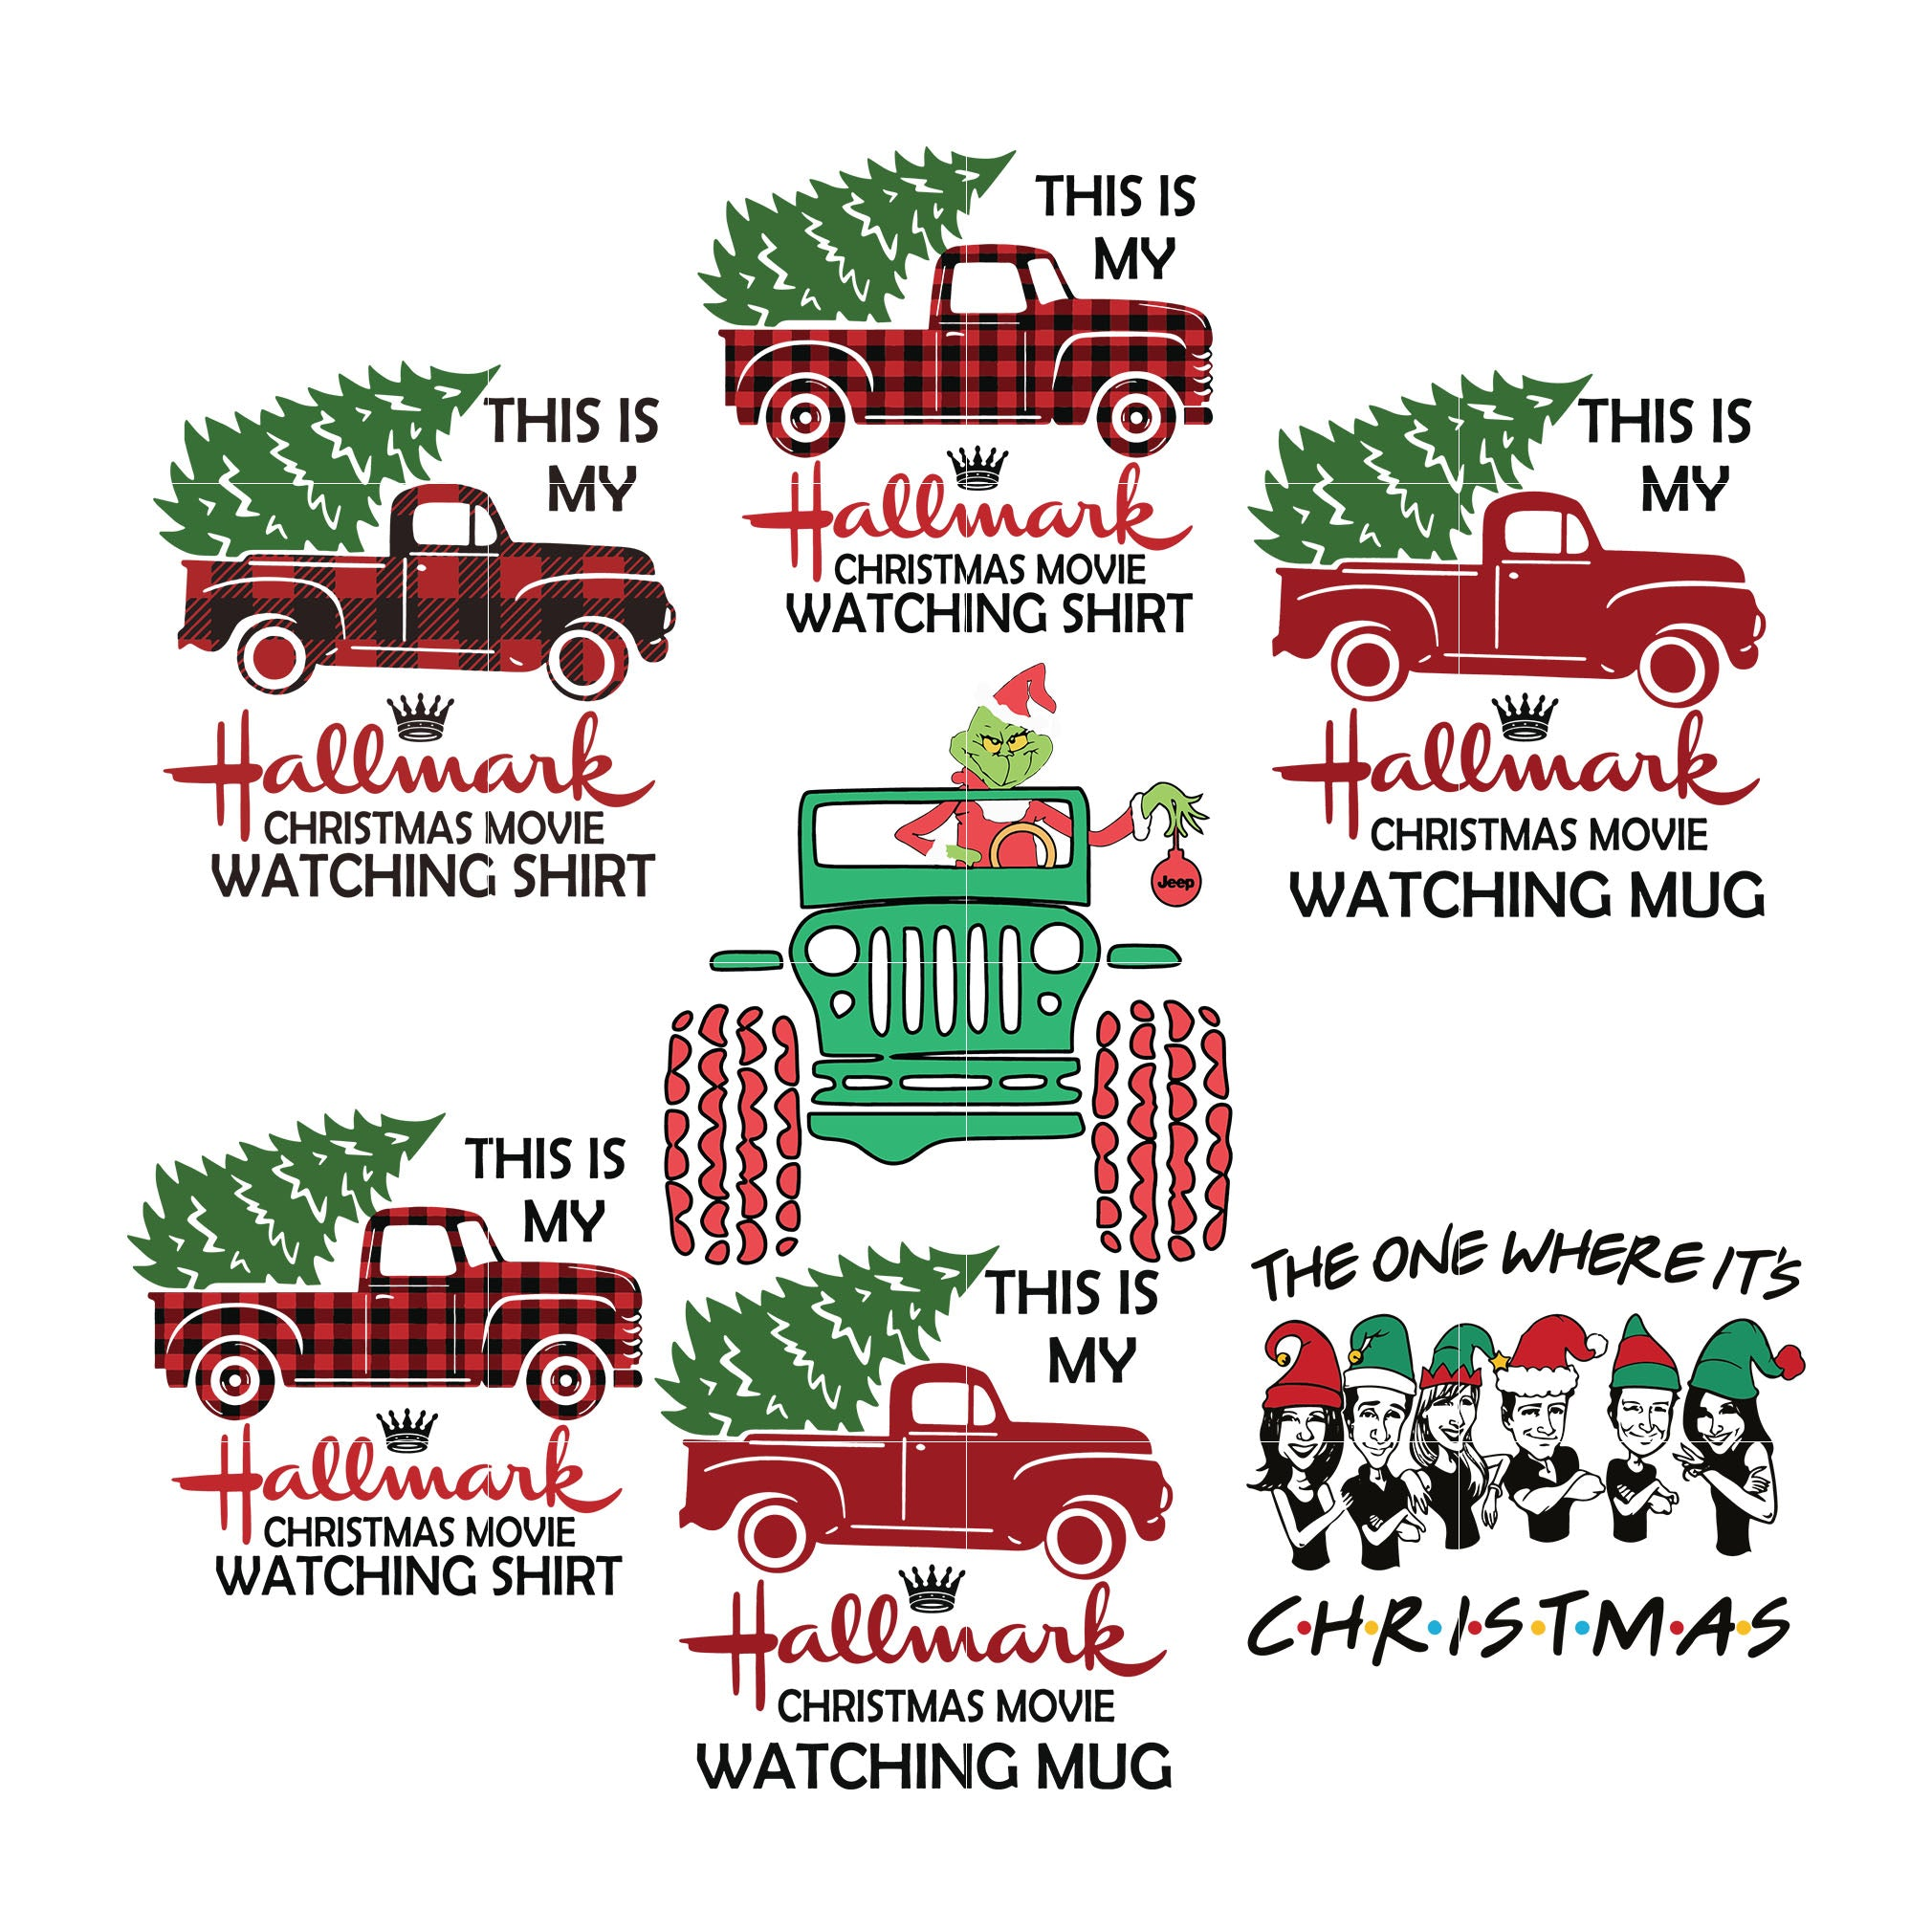 Hallmark christmas movie watching search svg, hallmark svg png dxf eps digital file